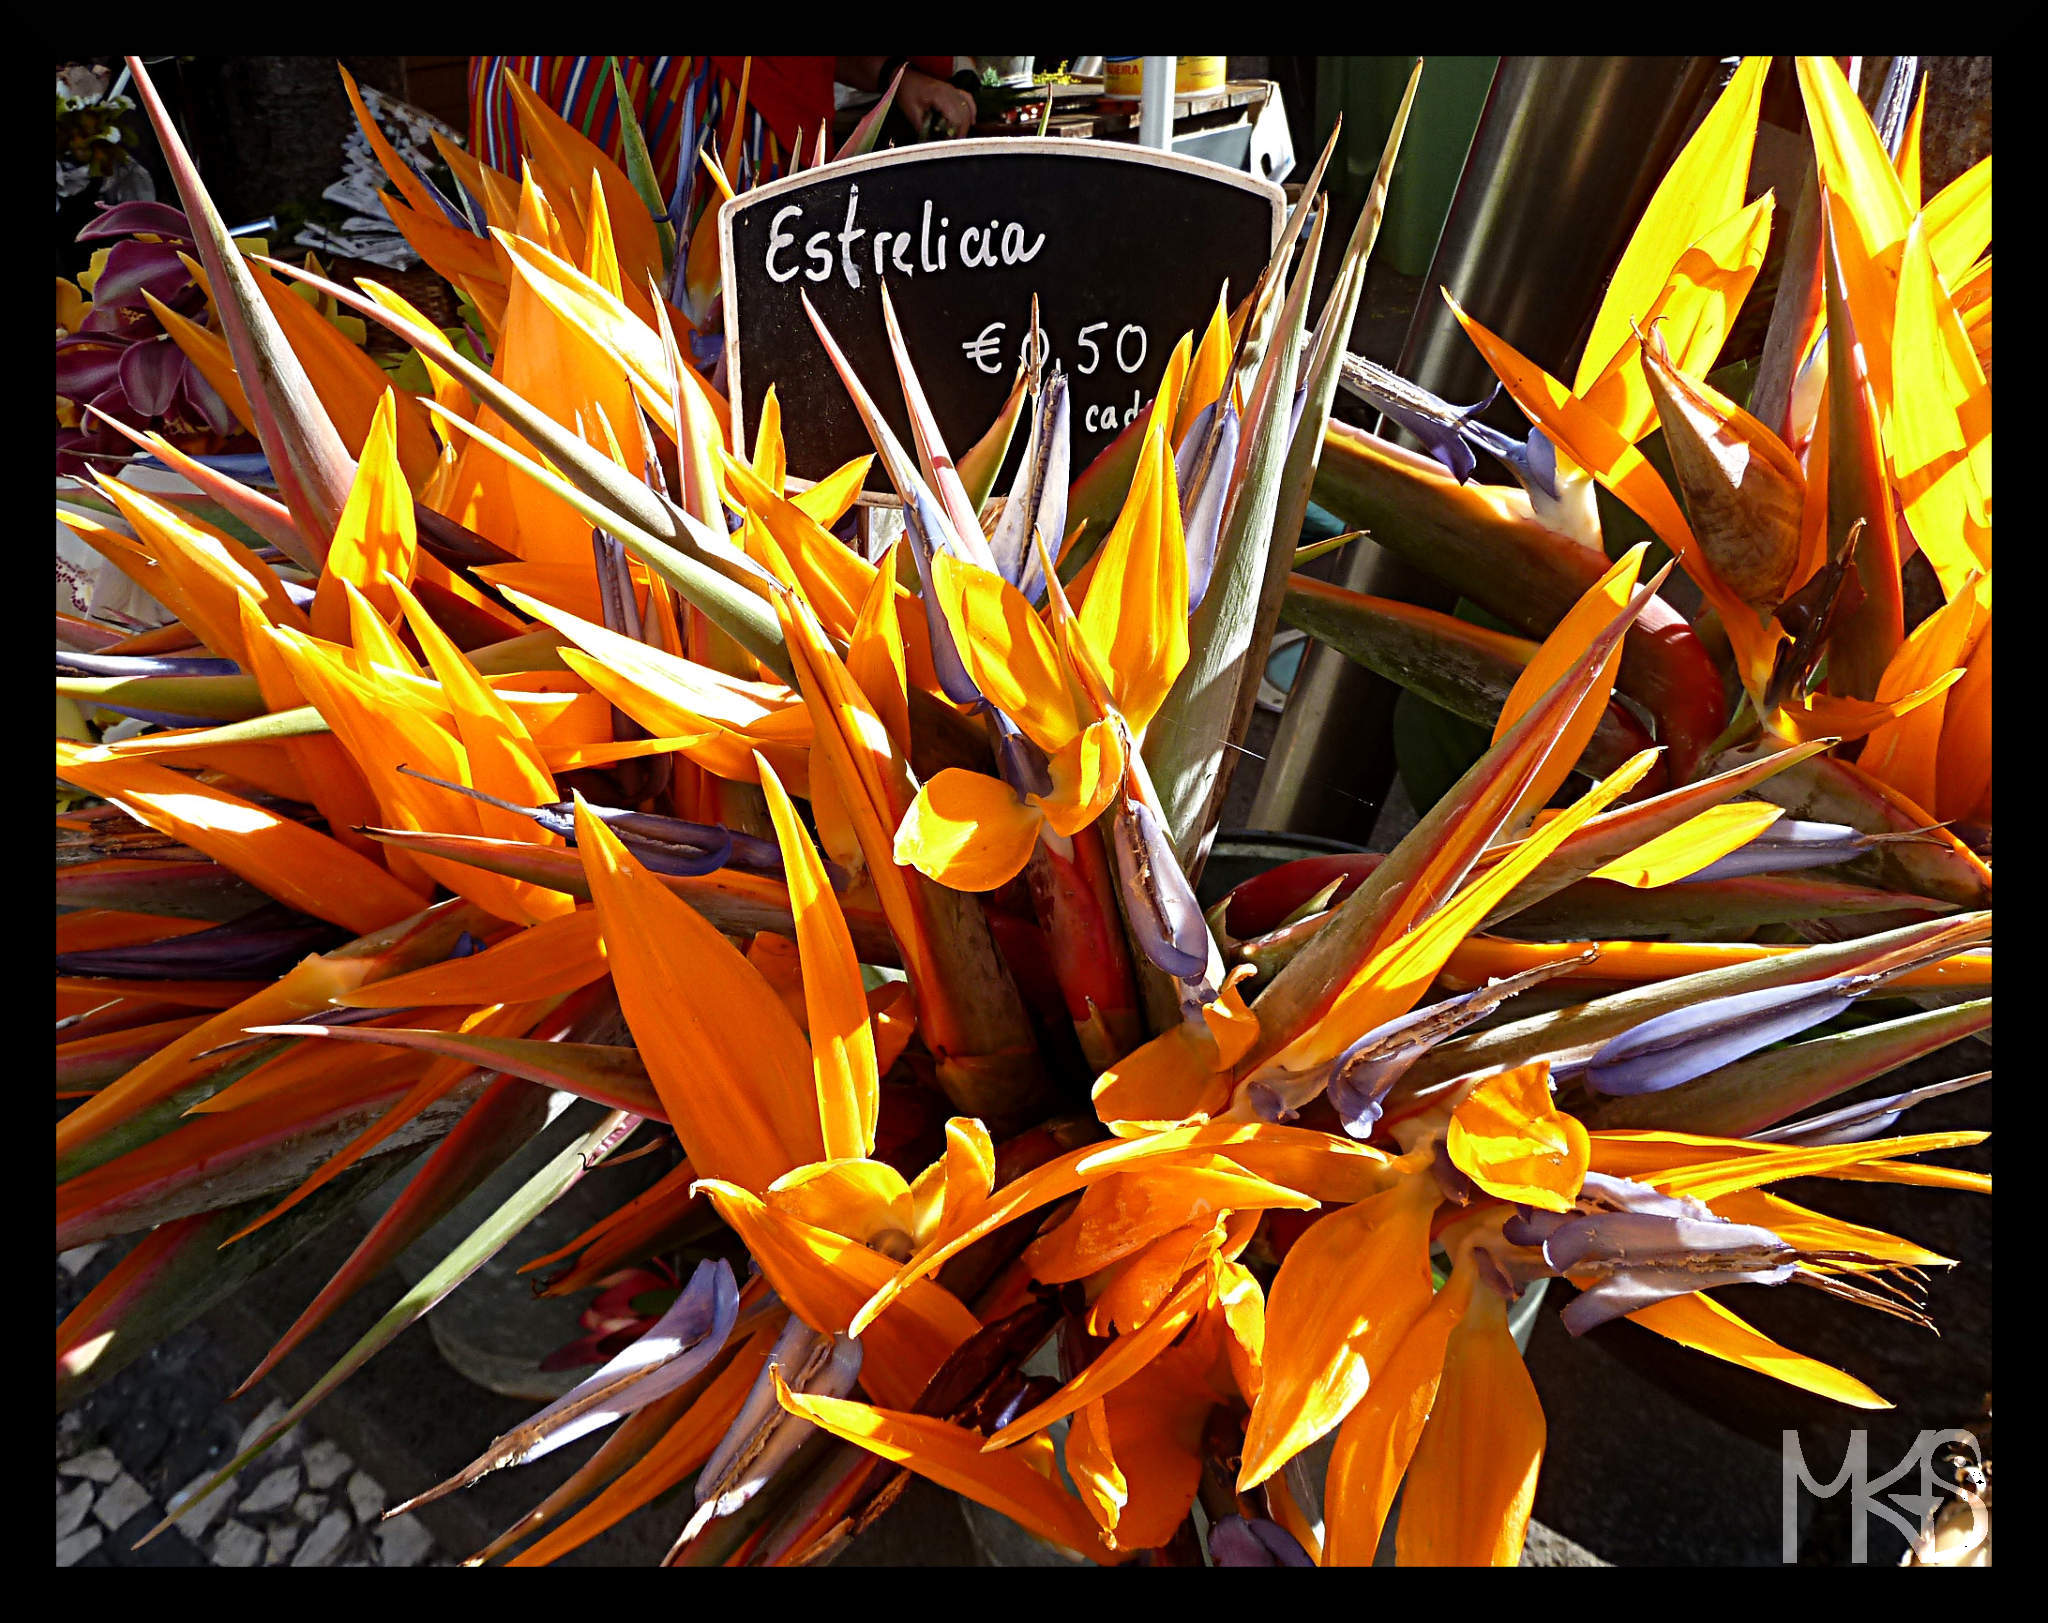 Strelitzia reginae (estrelicia), known as Strelitzia, Crane Flower or Bird of Paradise.